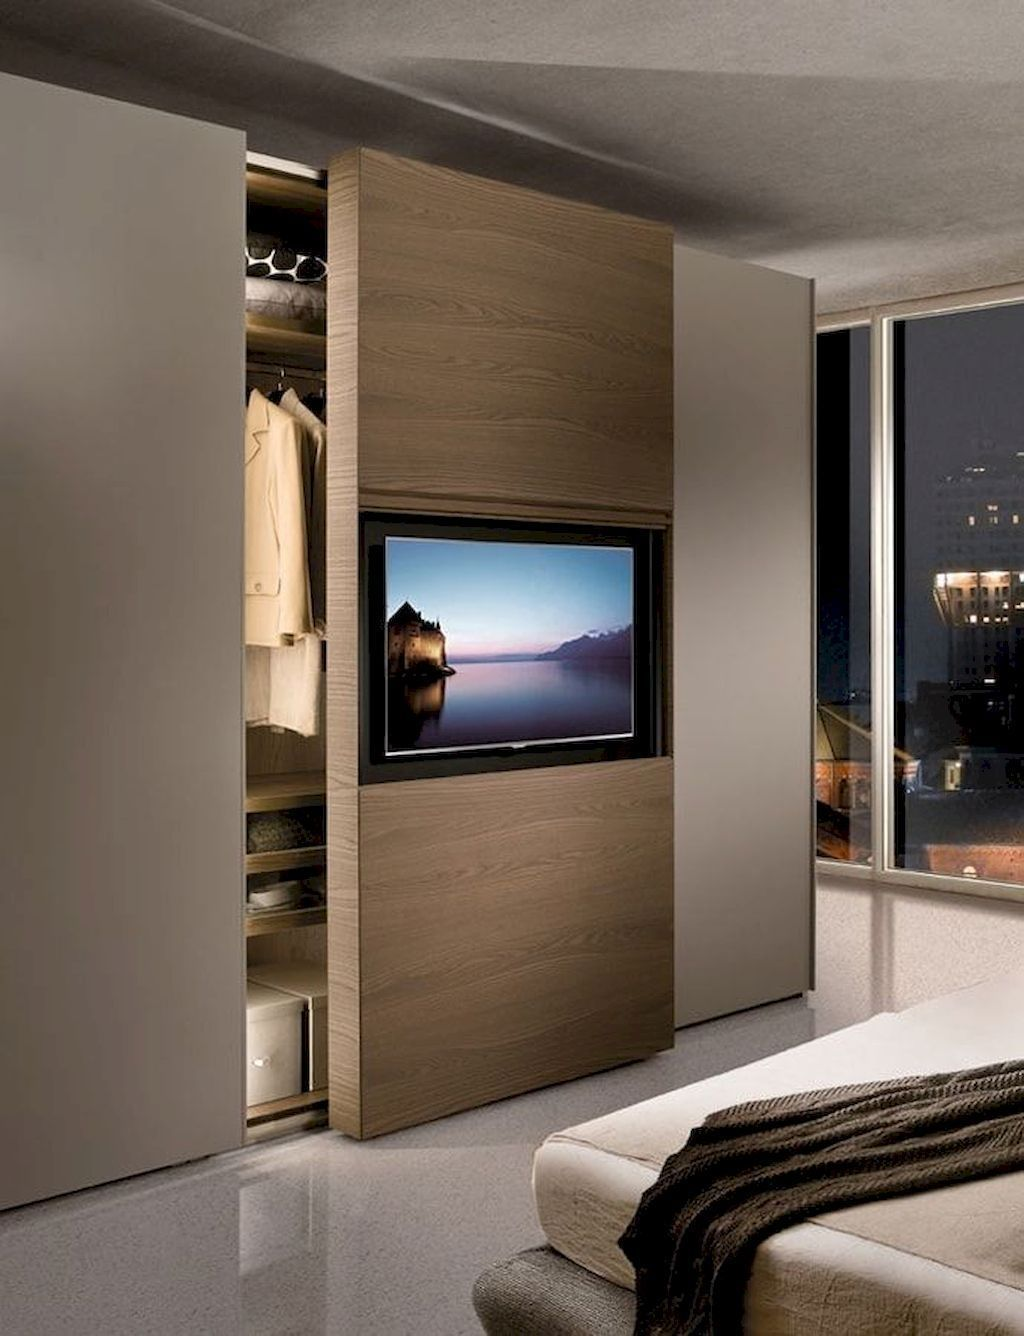 16+ Marvelous Bedroom Cabinet Design Ideas For Your Home